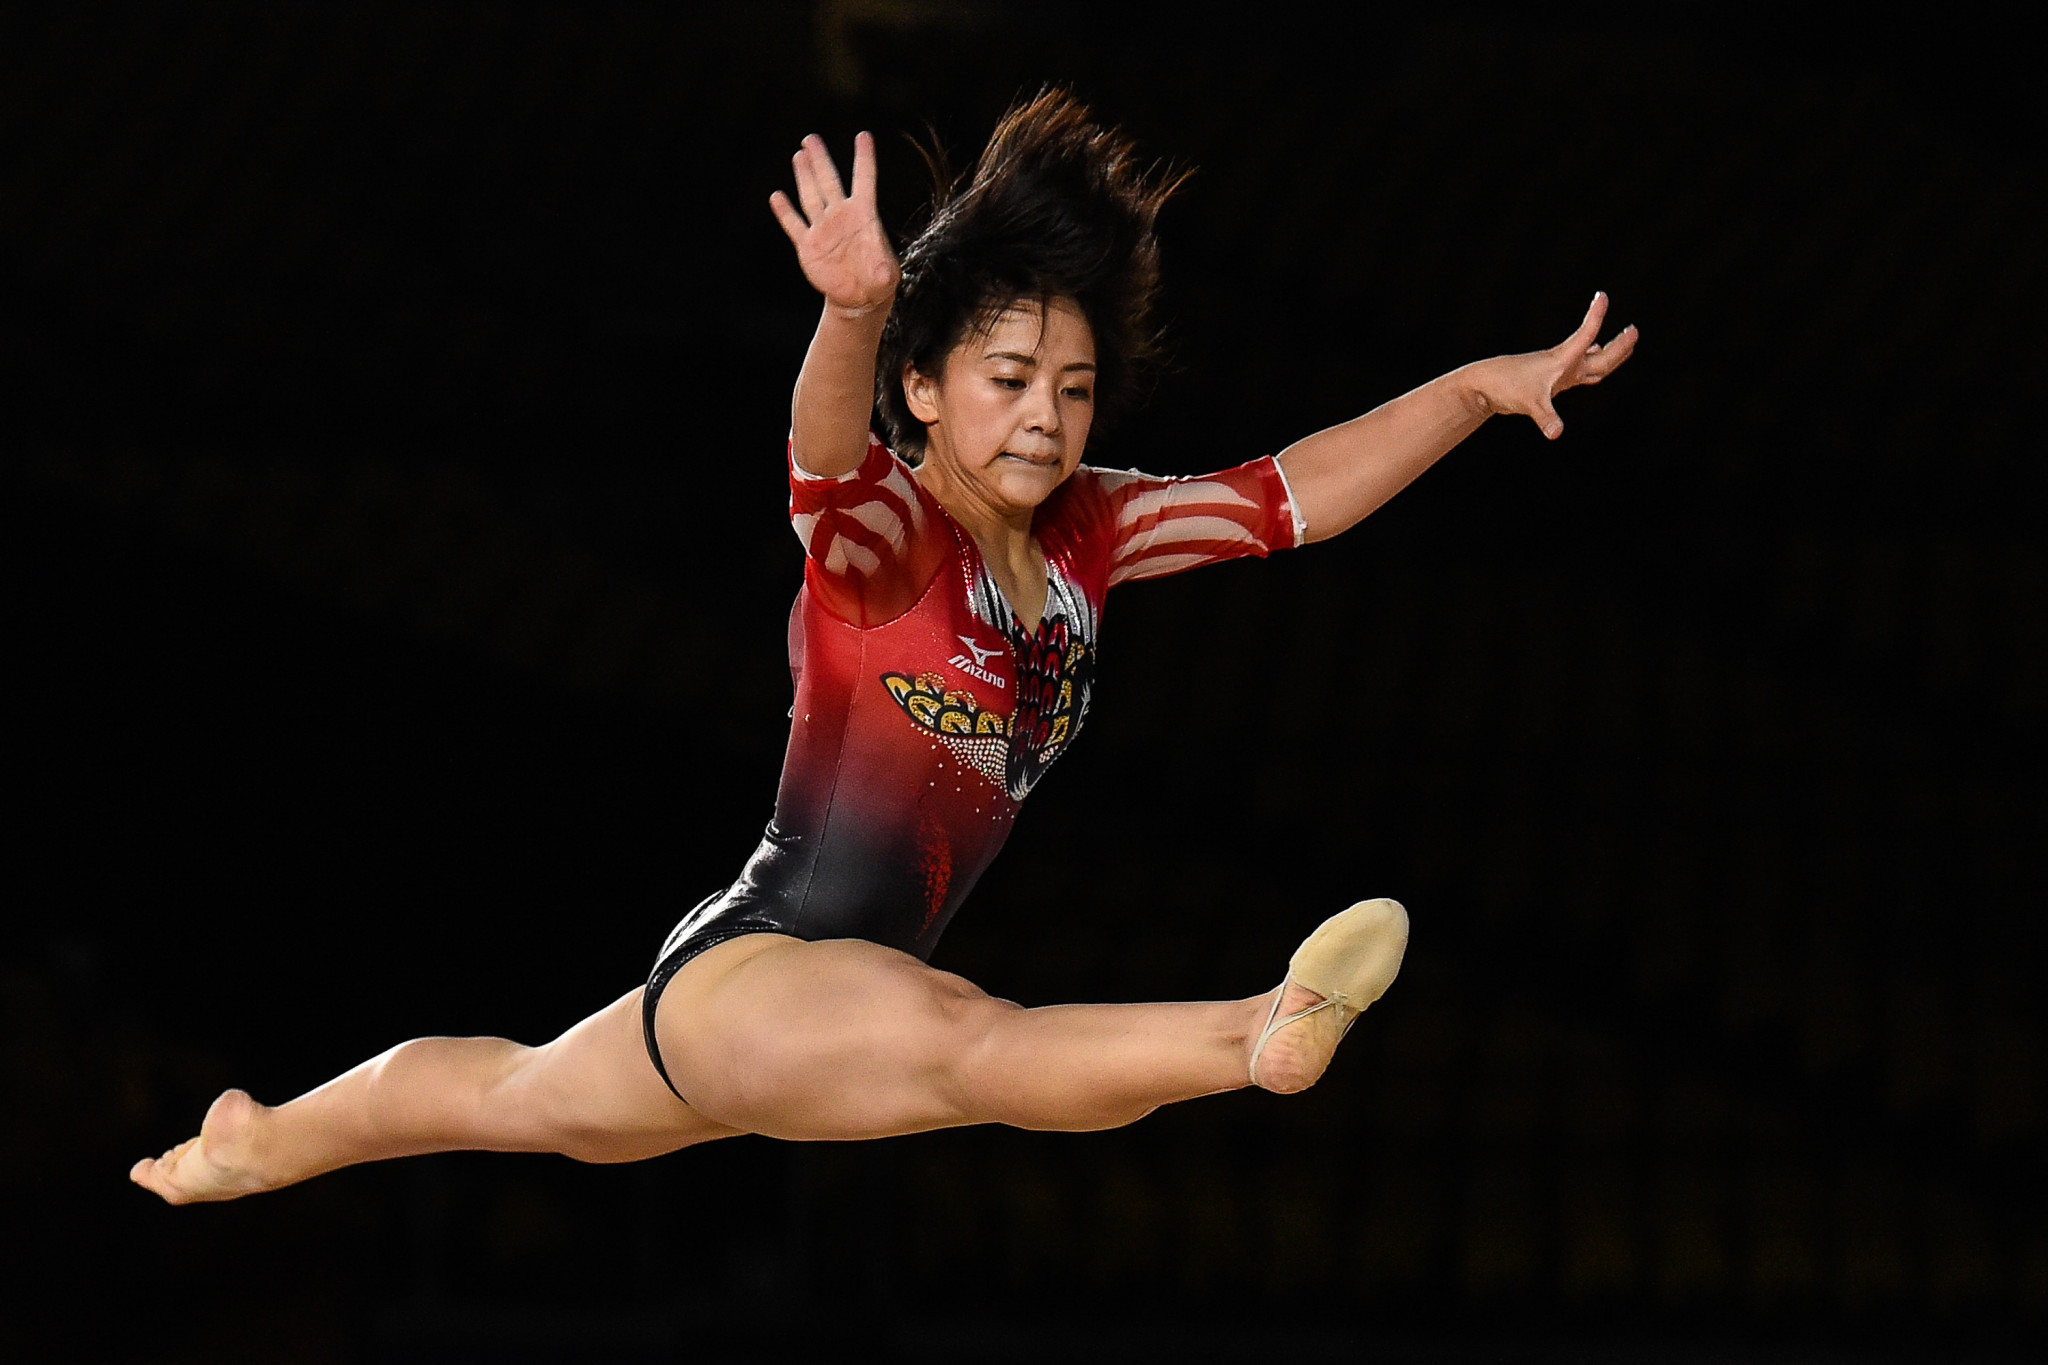 Japan's Mai Murakami finished top of the women's all-around qualification standings in Montreal ©Getty Images